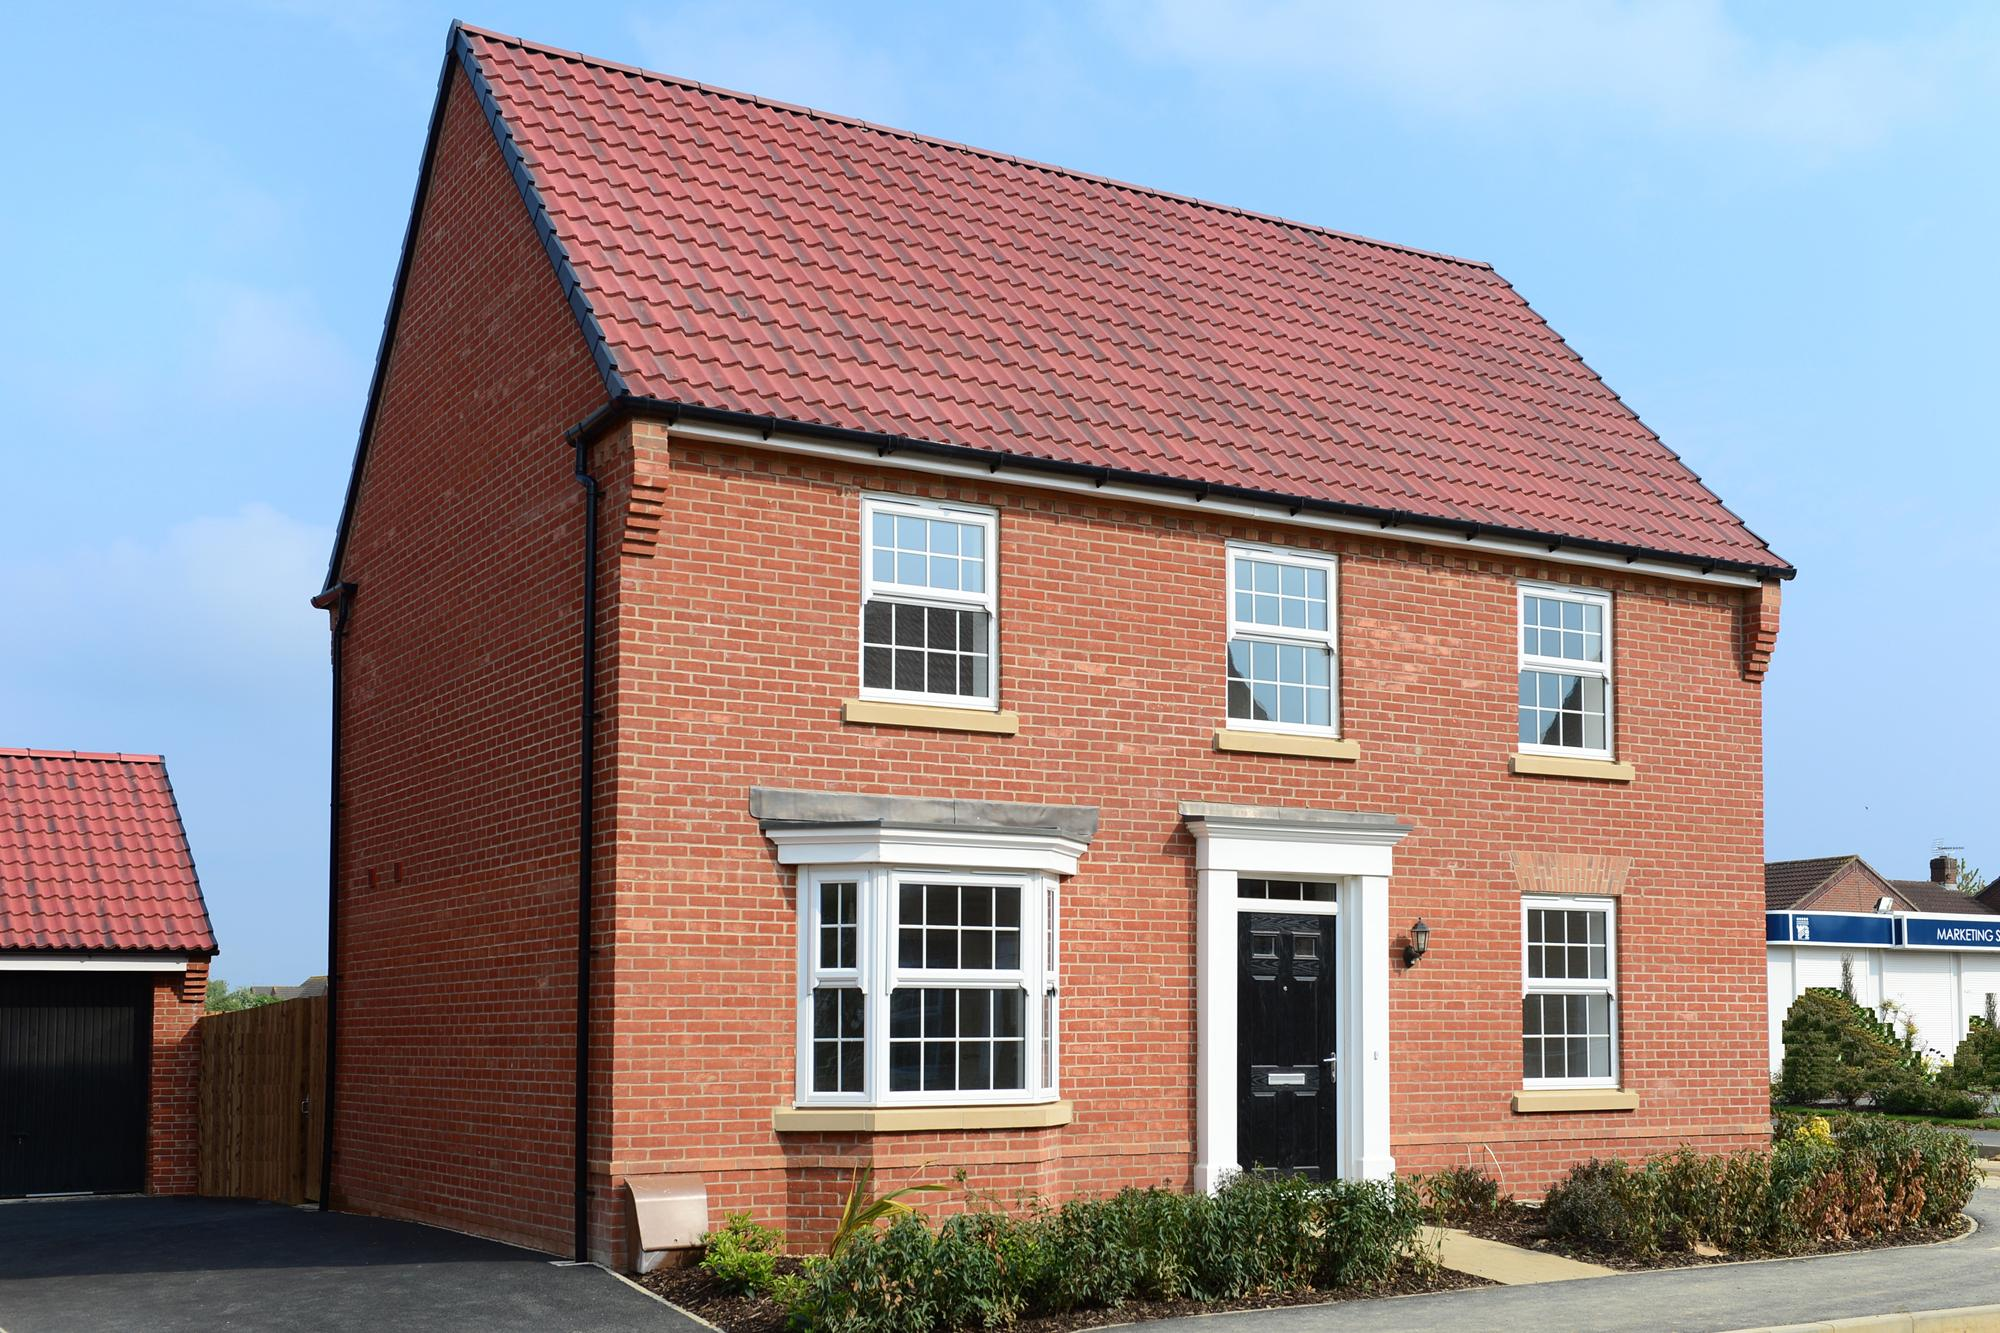 New Build Homes at Avondale in in CORBY